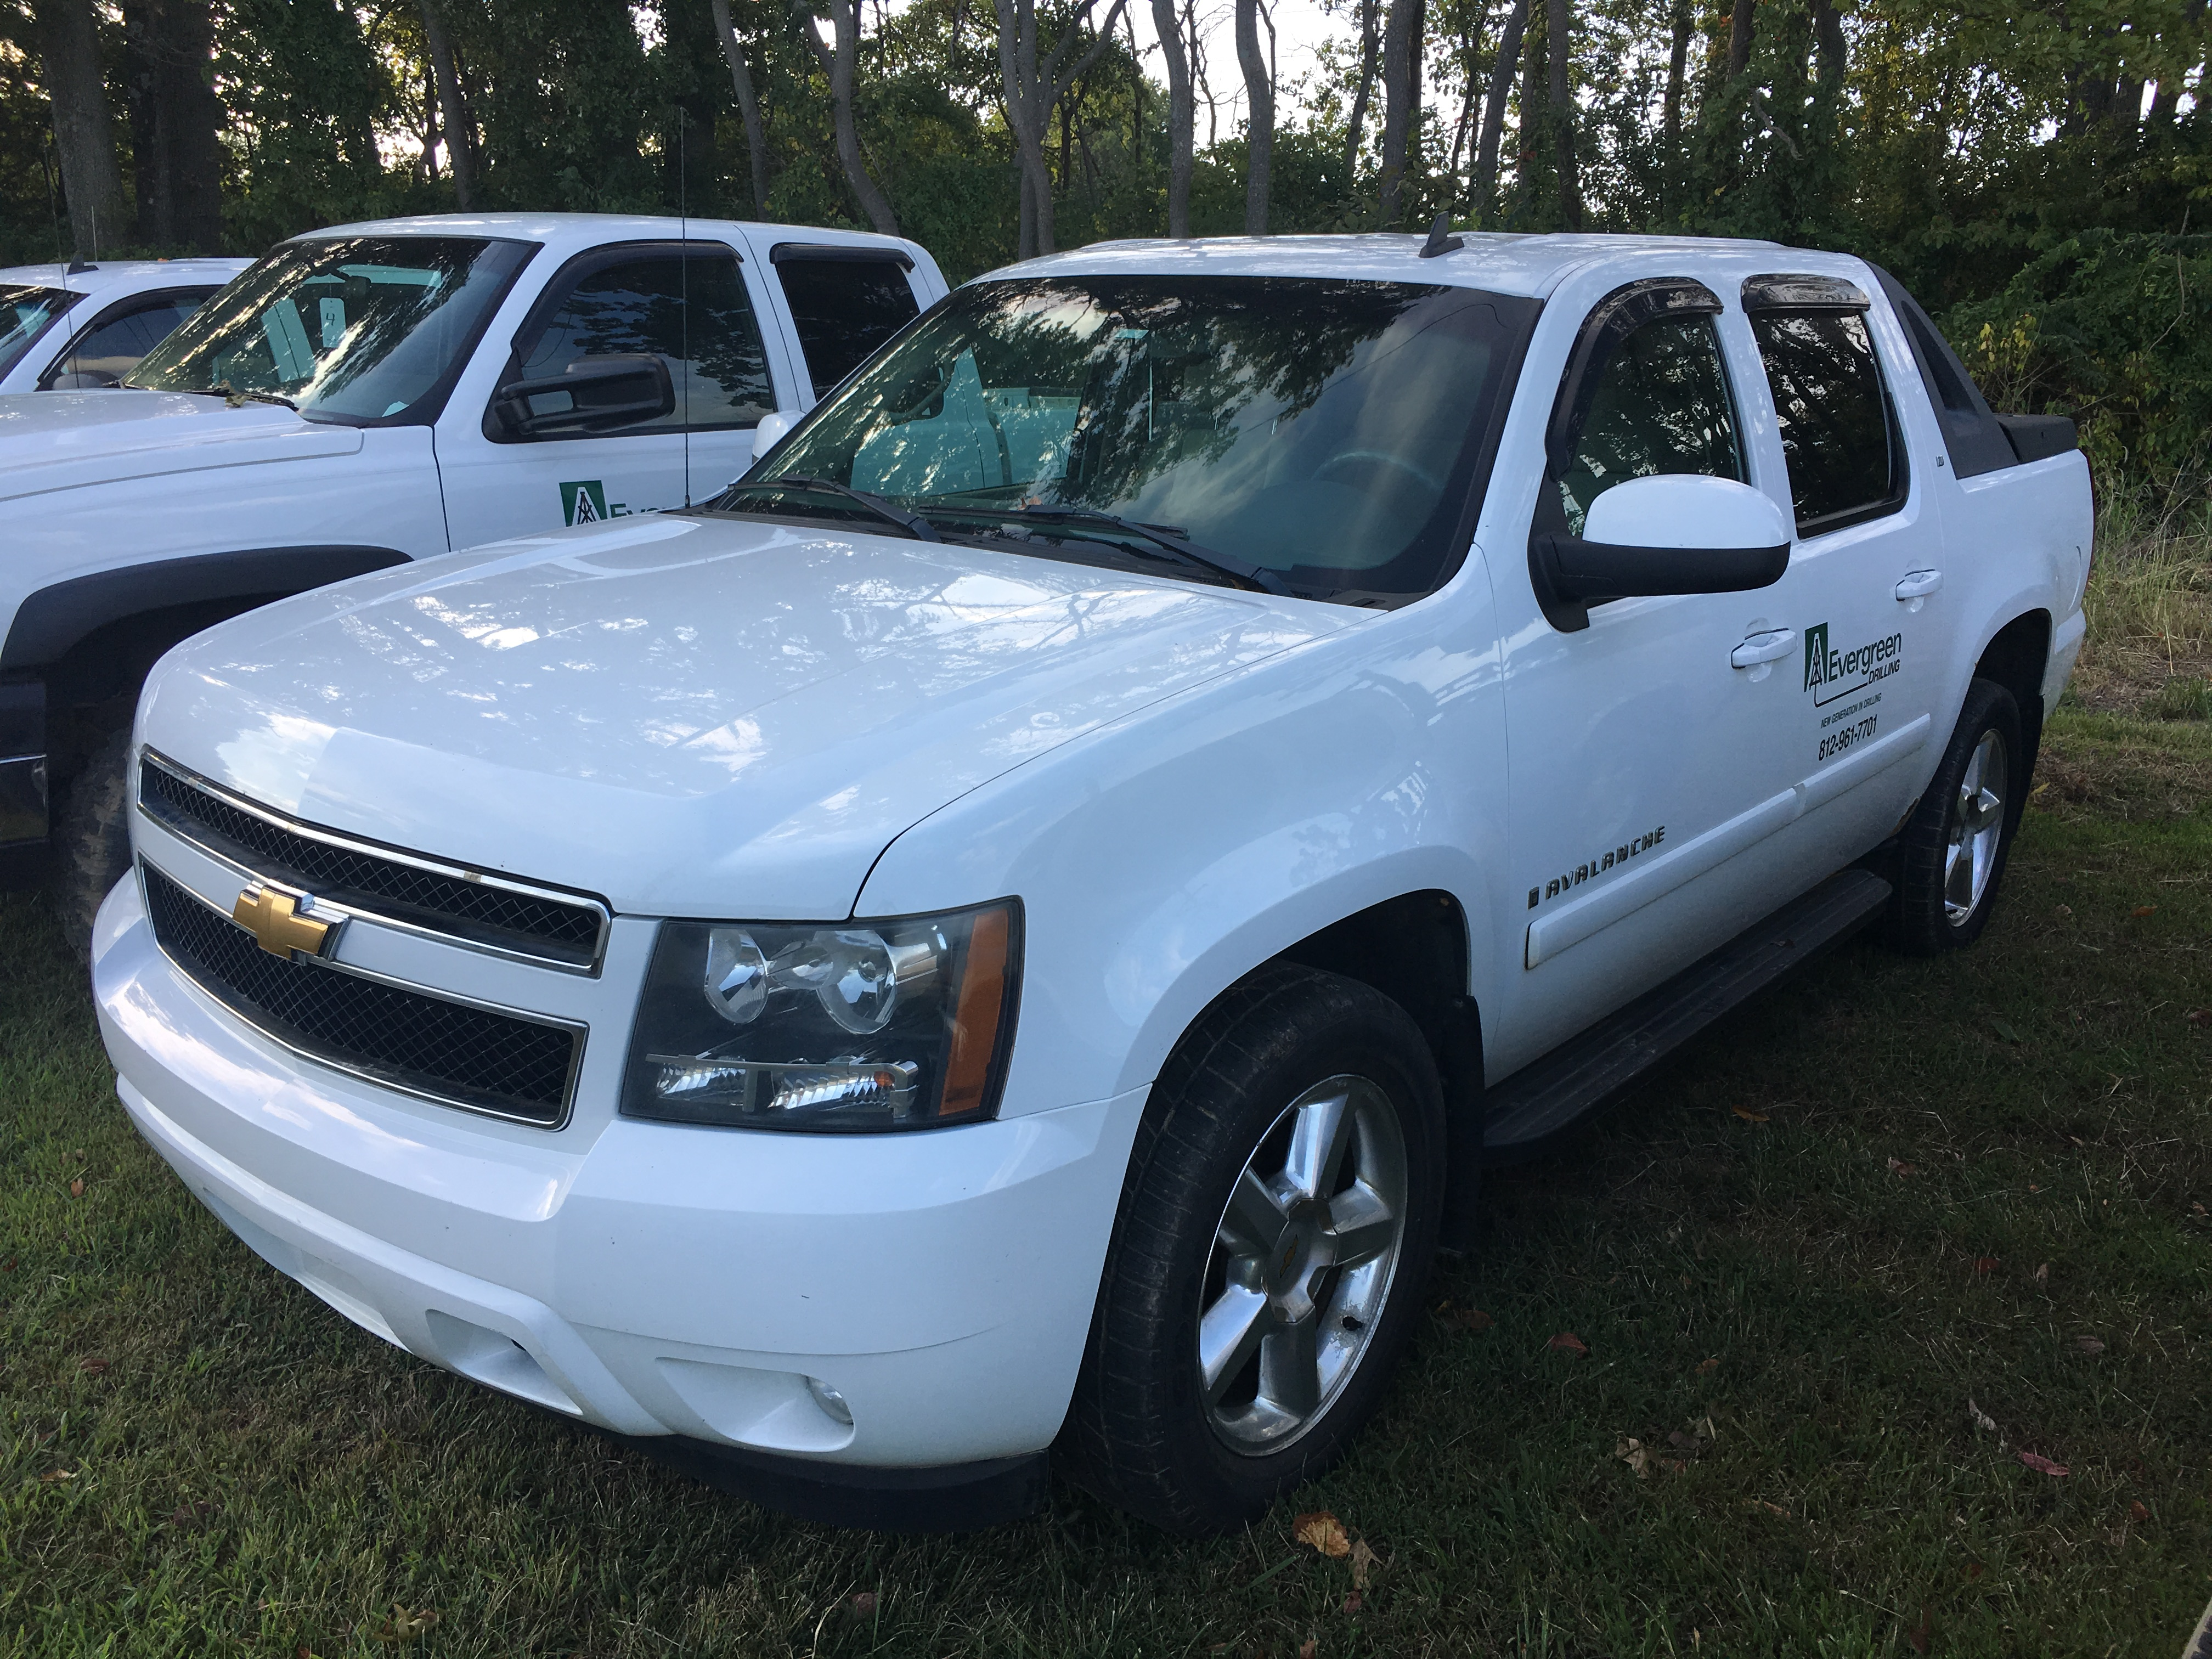 chevy jpg wikimedia wiki commons modified file chevrolet avalanche